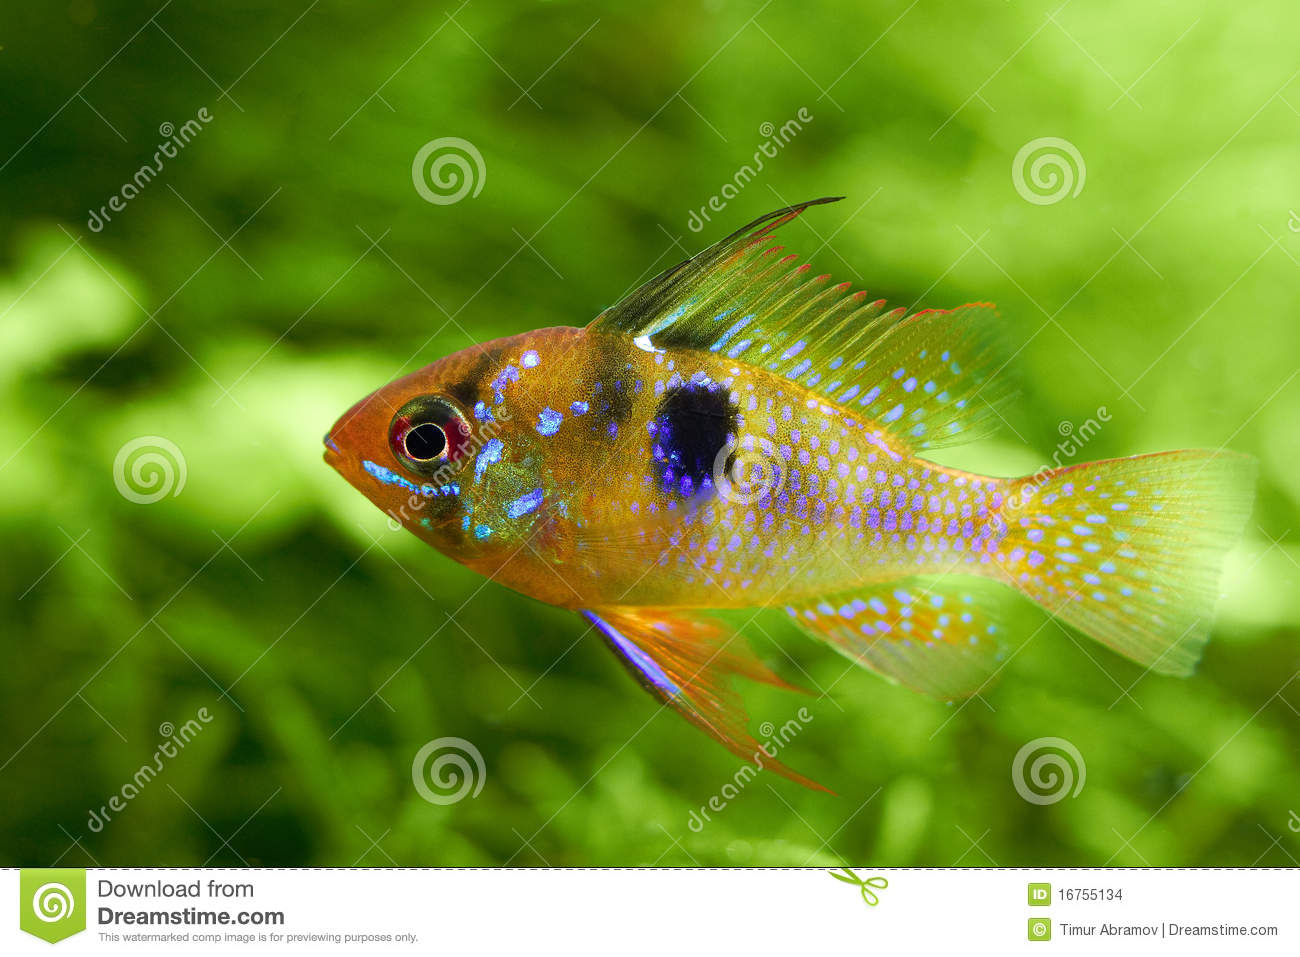 ... ramirezi called a butterfly-fish in a nature aquarium in Amano style